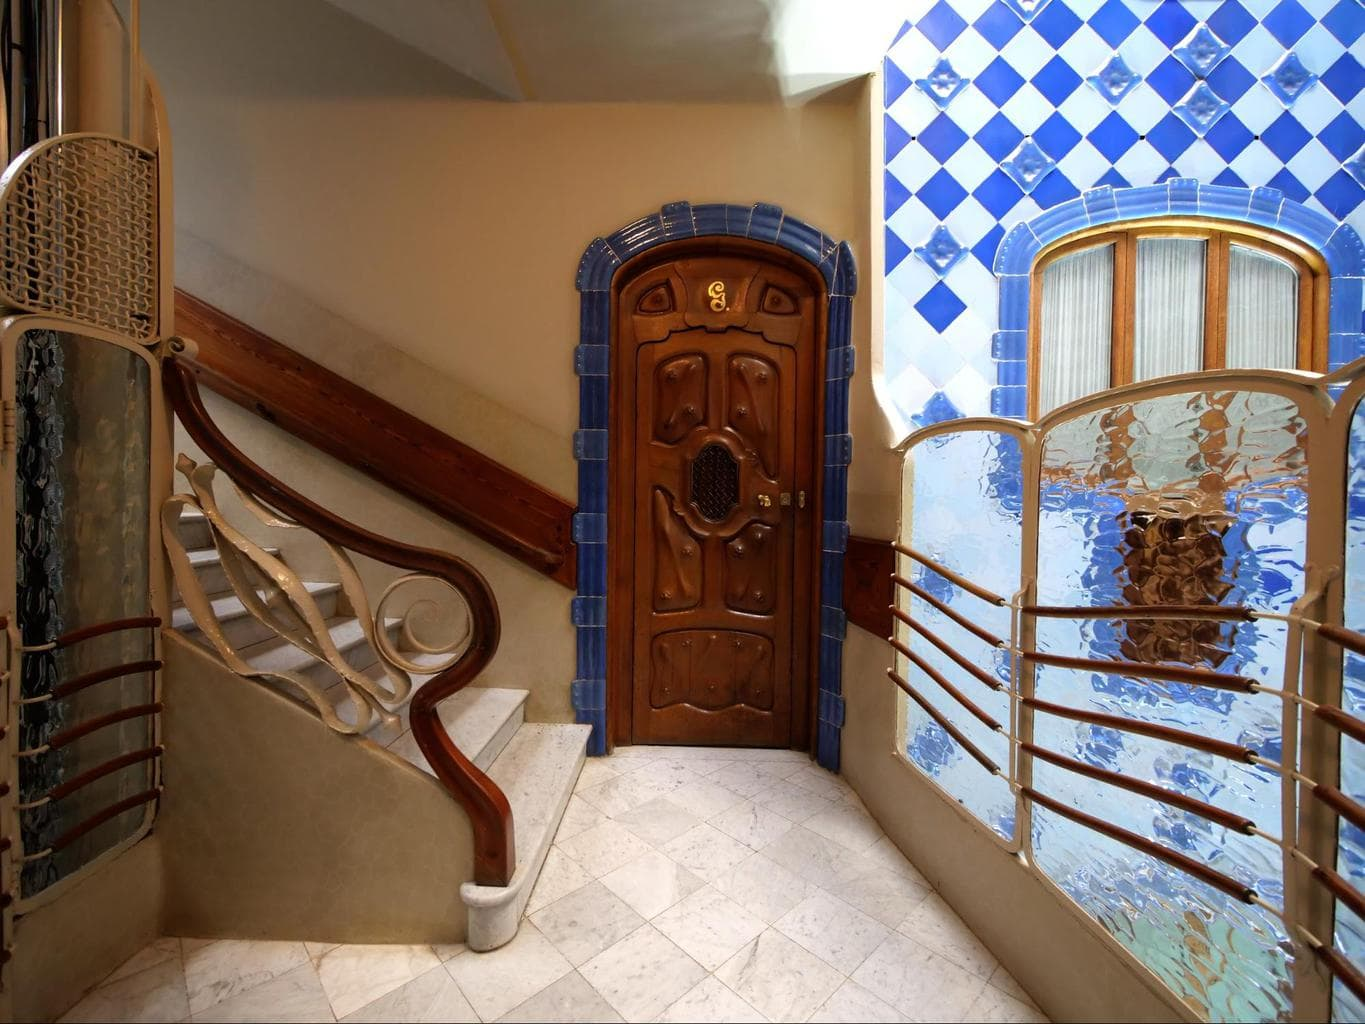 The staircase of Casa Batllo